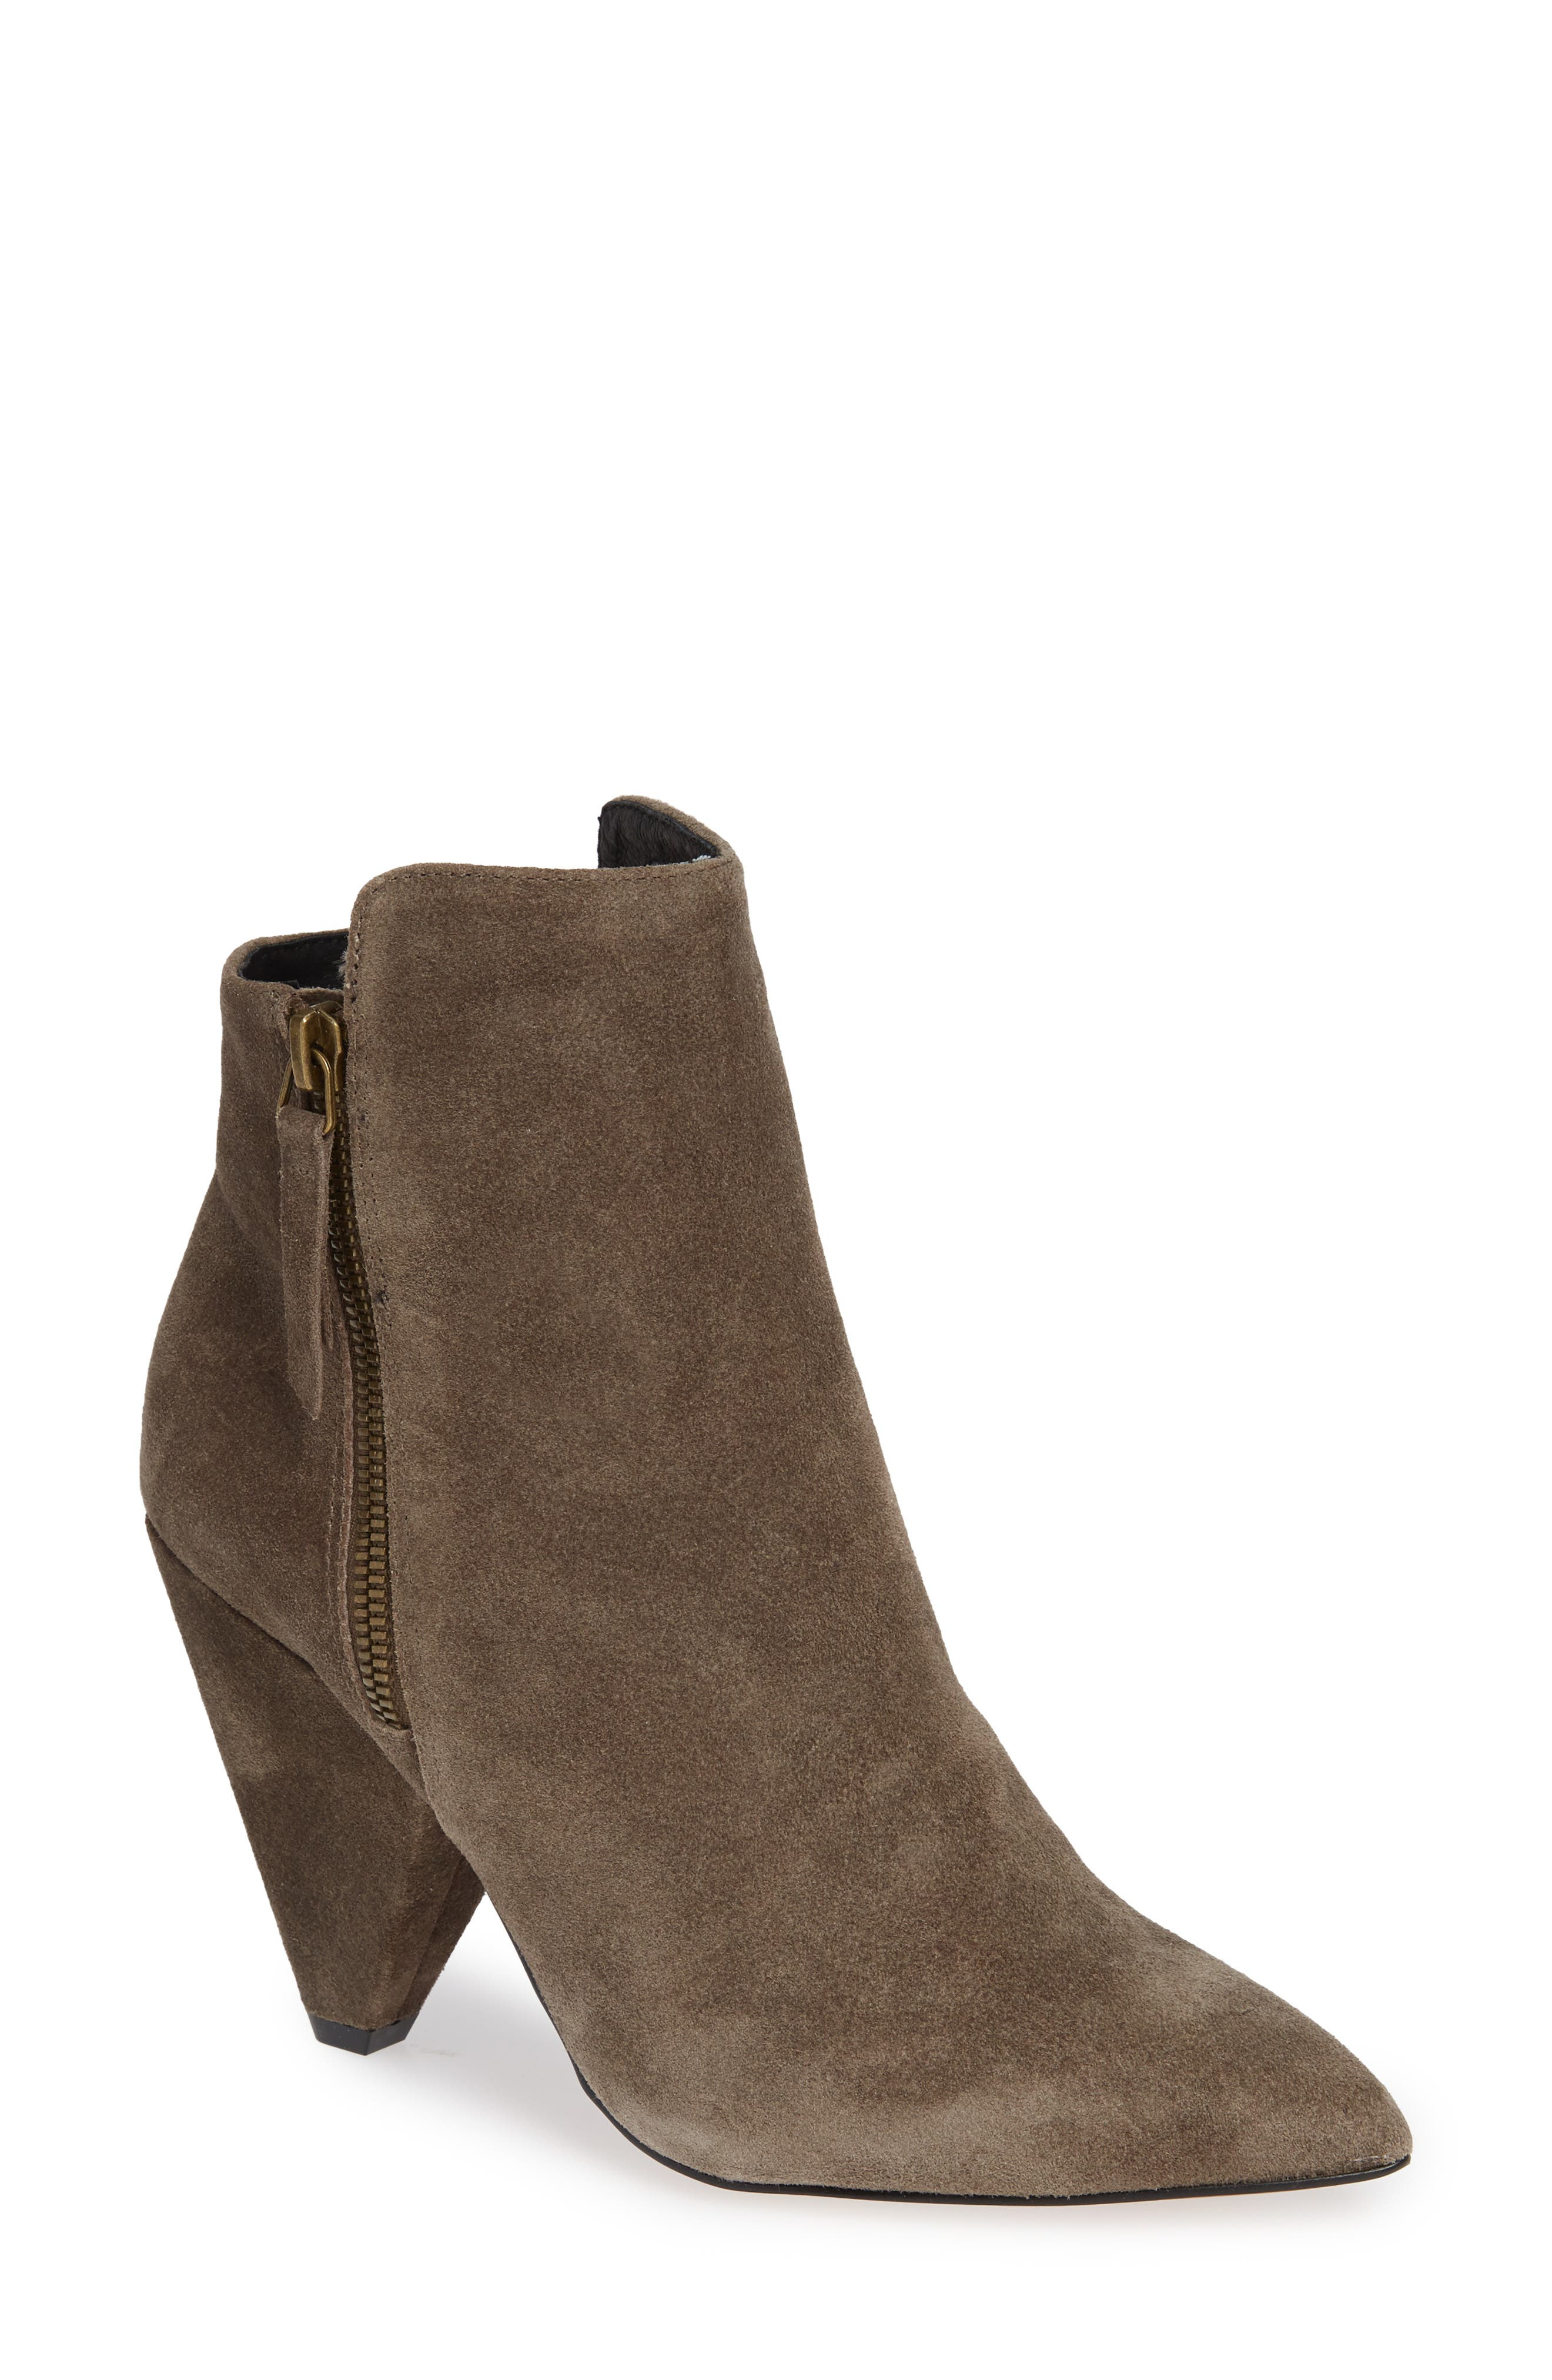 KENNETH COLE NEW YORK,                             Galway Bootie,                             Main thumbnail 1, color,                             063